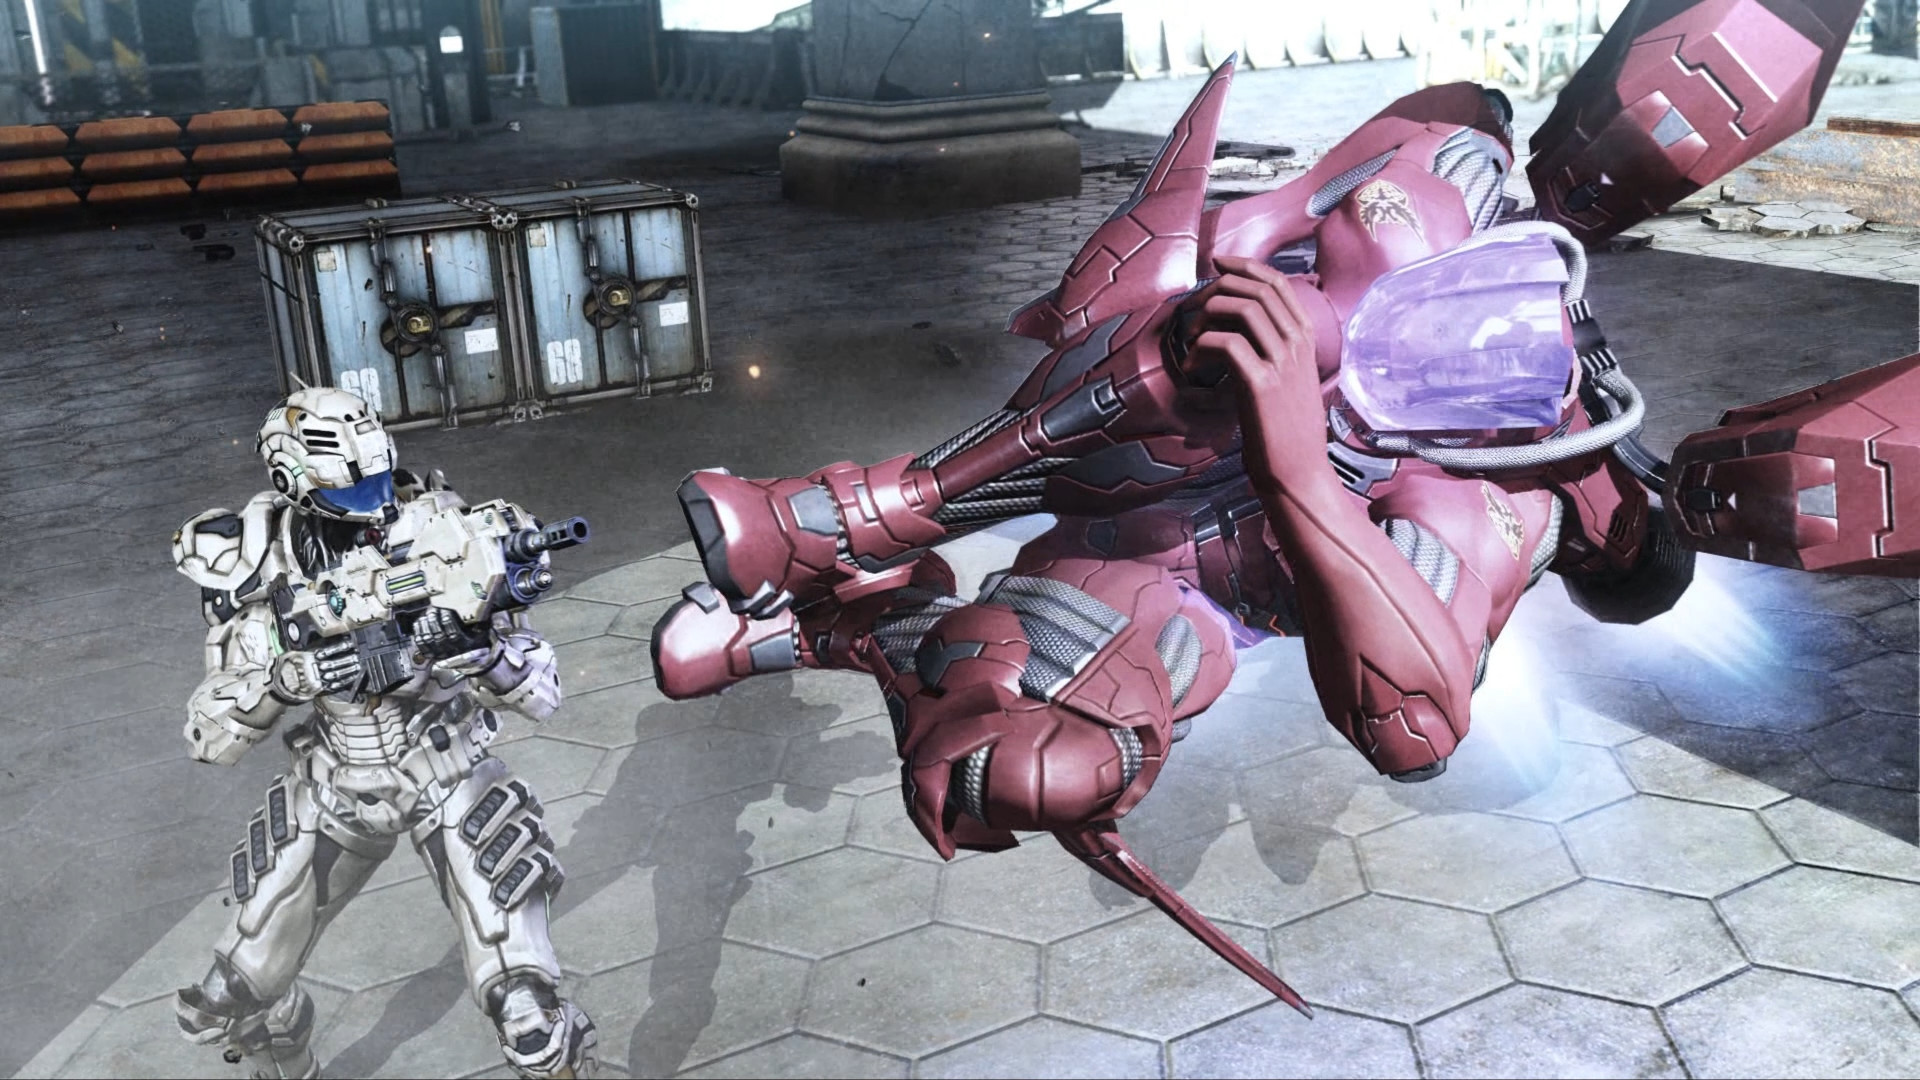 The PC port of Vanquish has one of those pesky high-frame-rate bugs screenshot